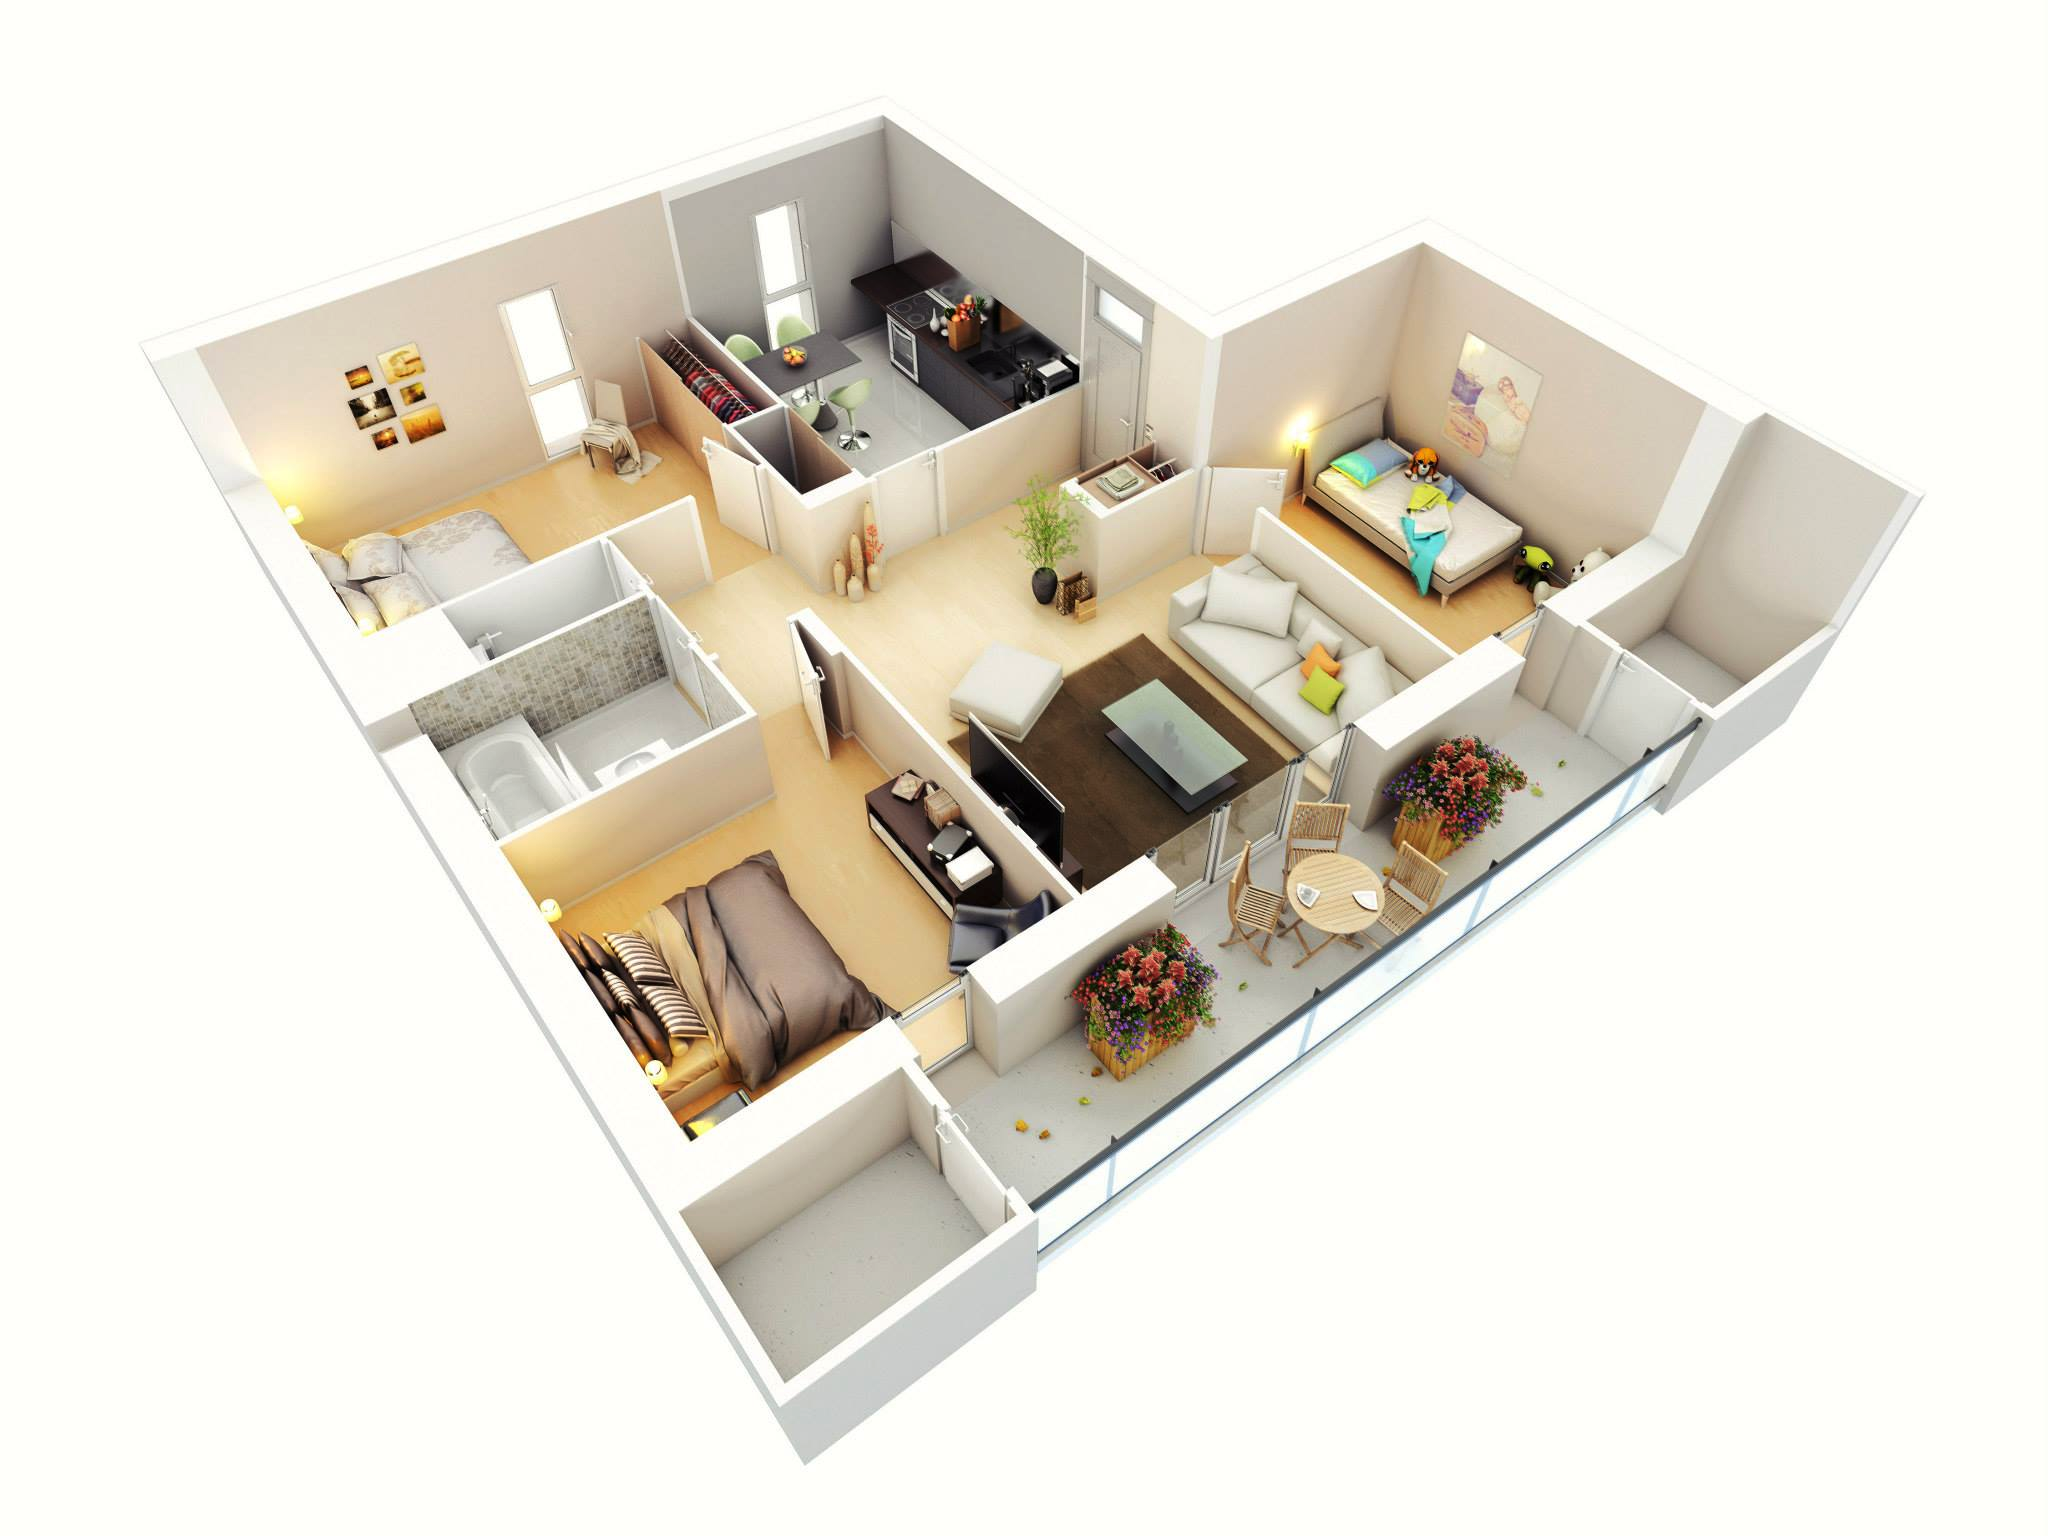 apartment 3 bedroom.  25 More 3 Bedroom 3D Floor Plans